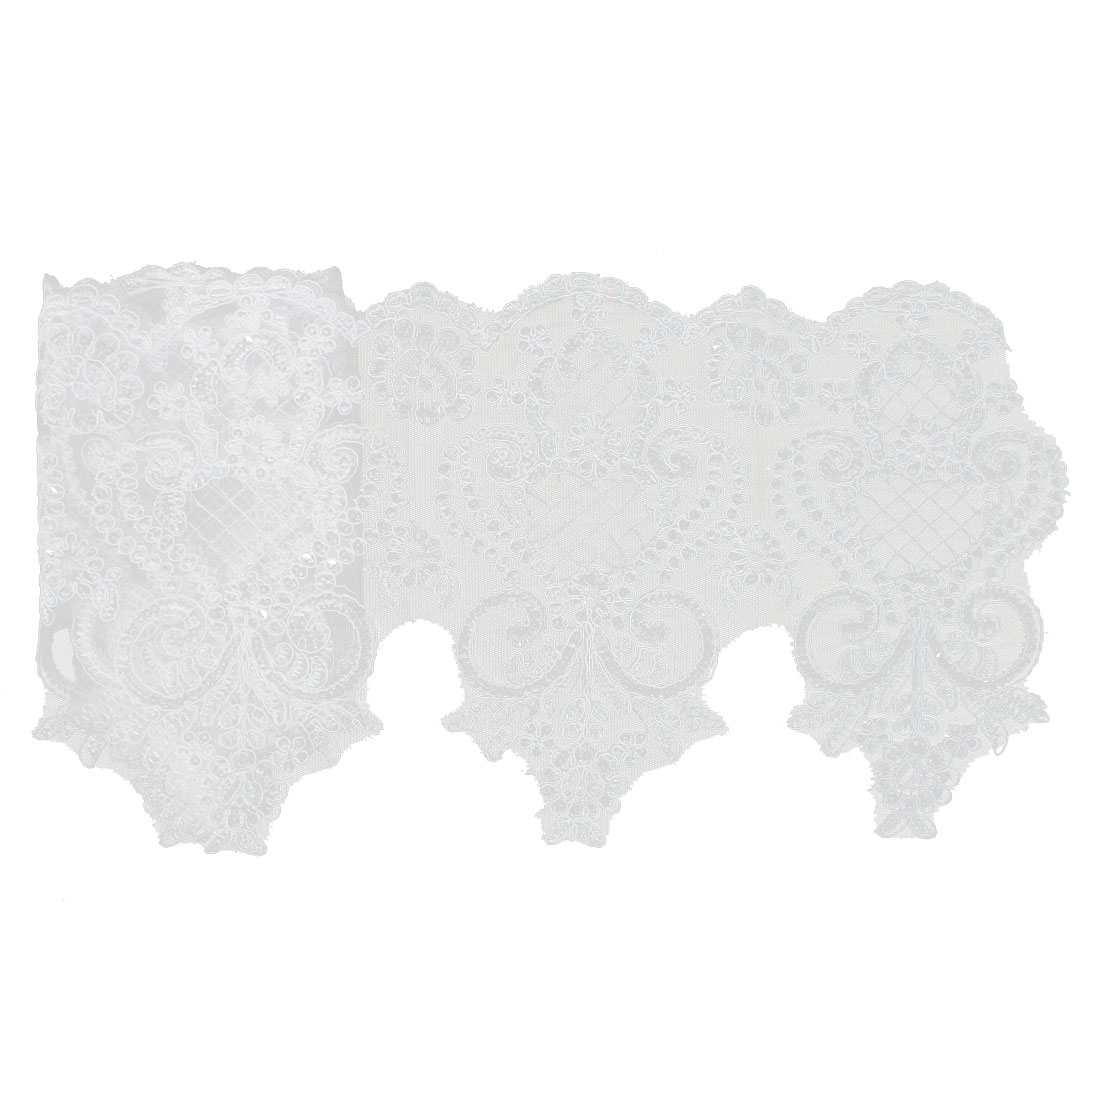 Bridal Dress Veil Shiny Sequins Decor Lace Flowers Trim Appliques Decorative Ribbon